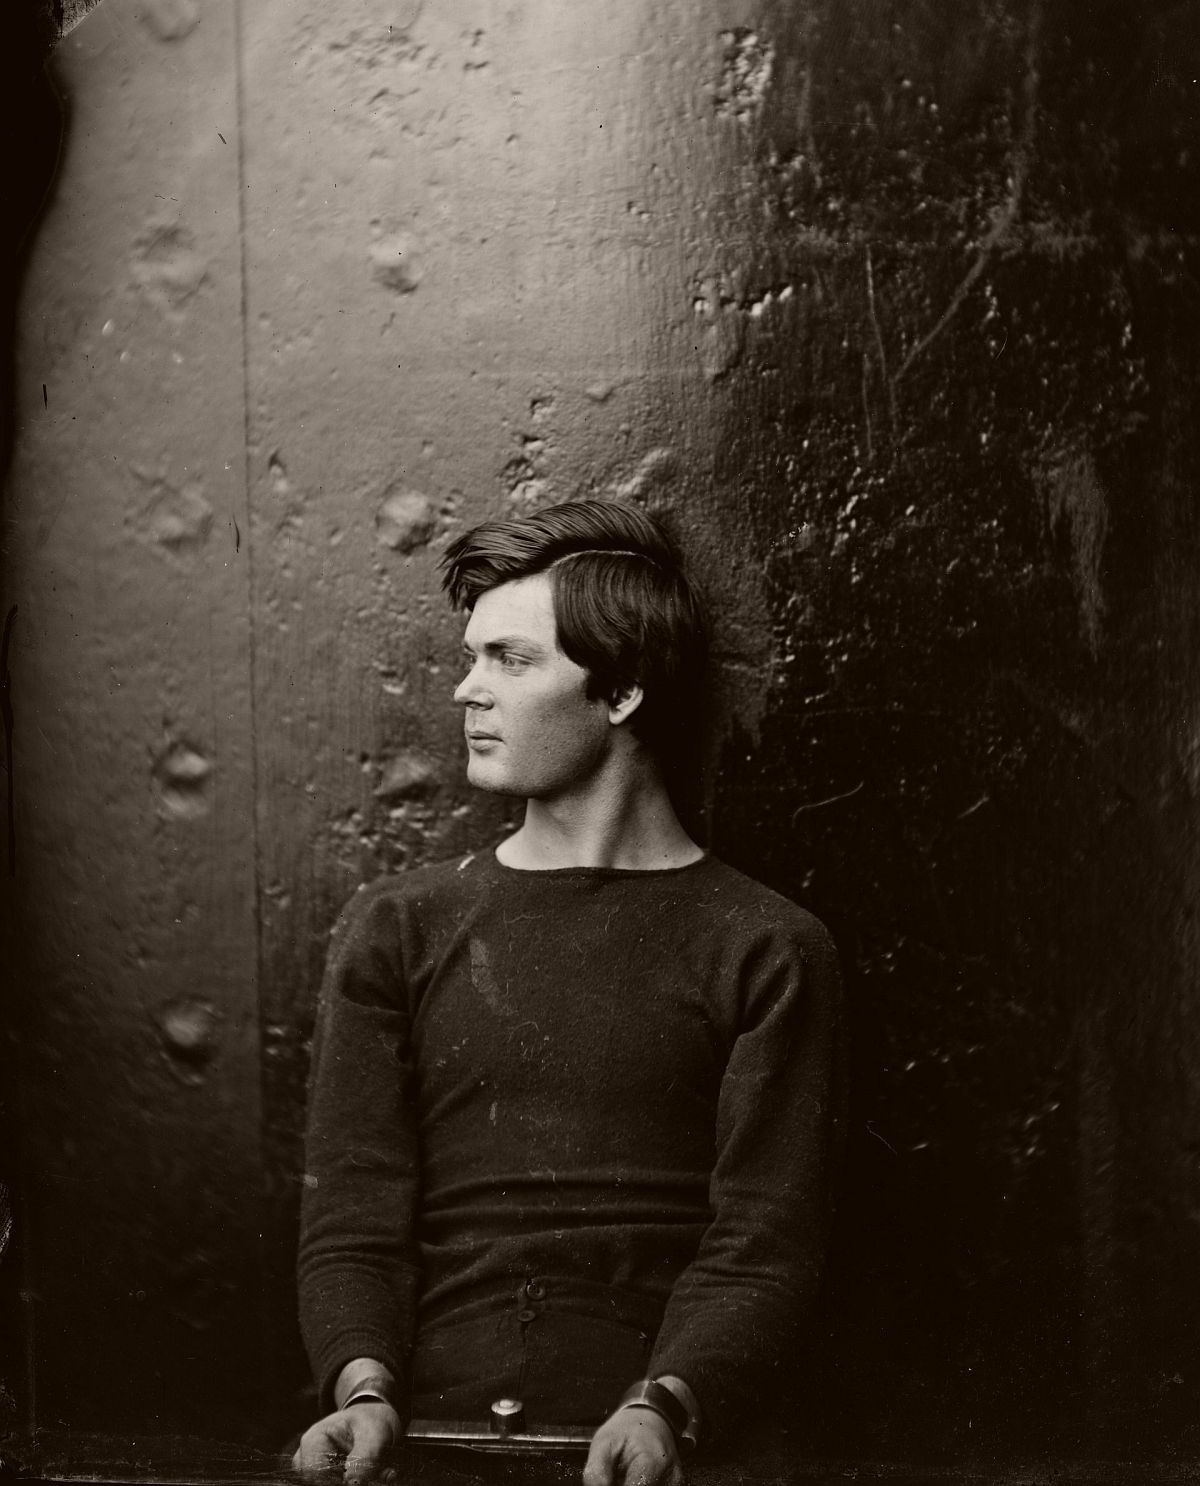 Lewis Powell, conspirator to assassination, after arrest, 1865.